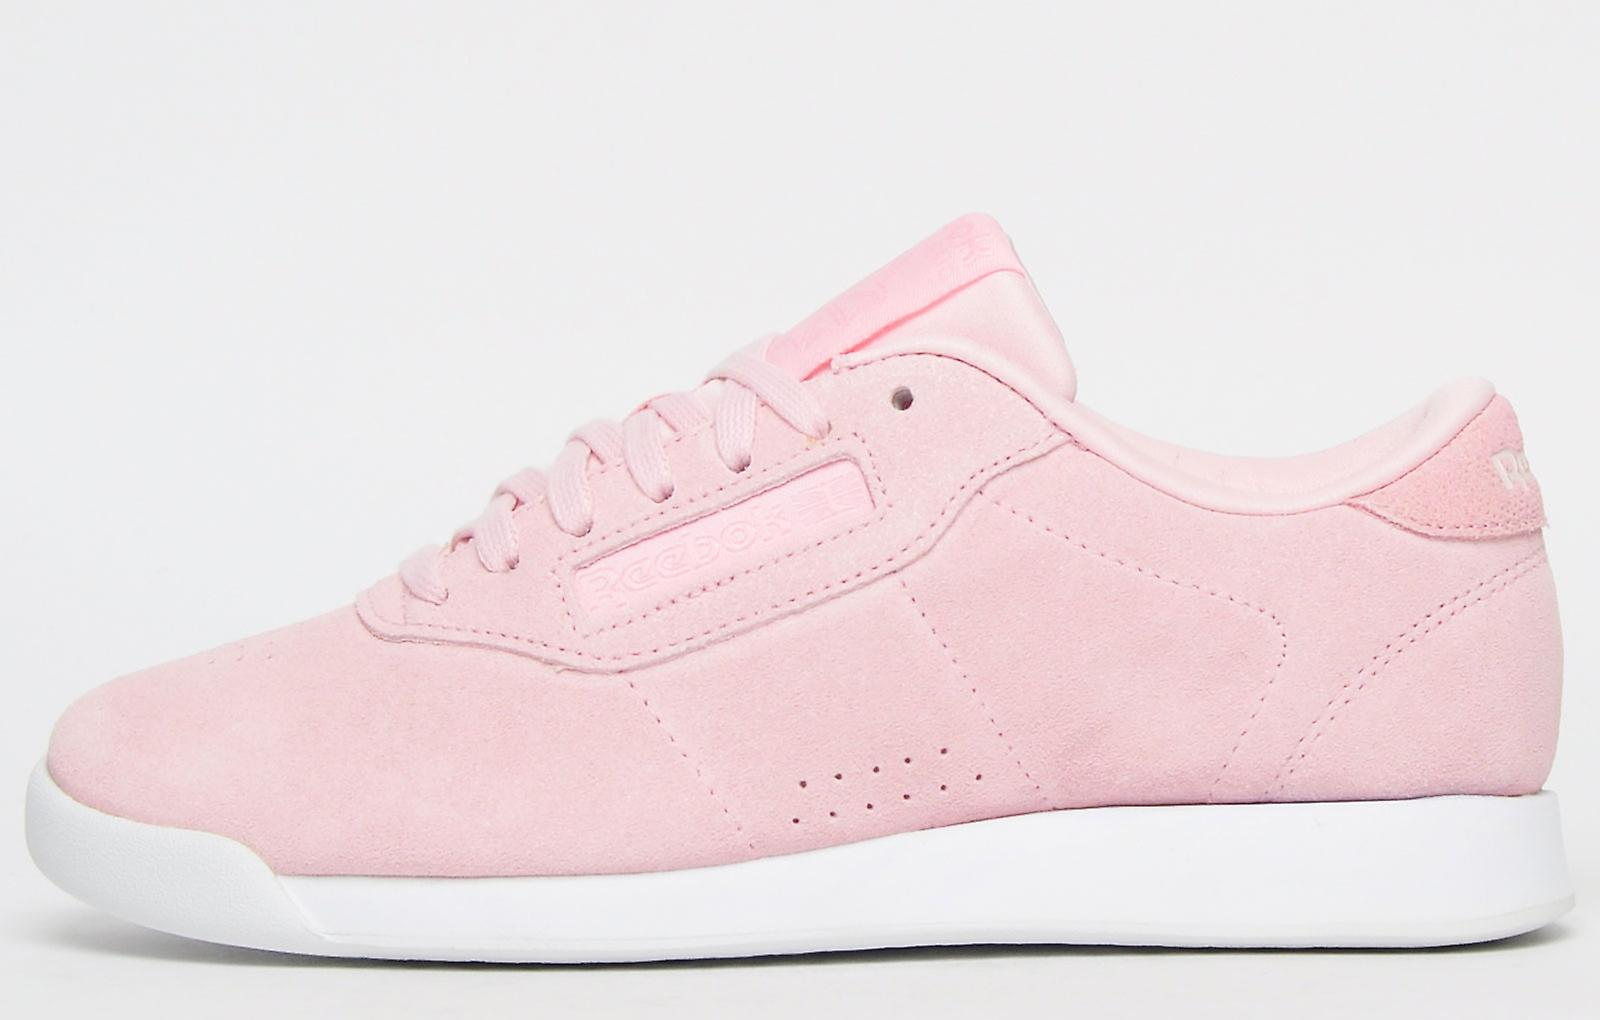 Reebok Classic Princess Suede Practical Pink / White